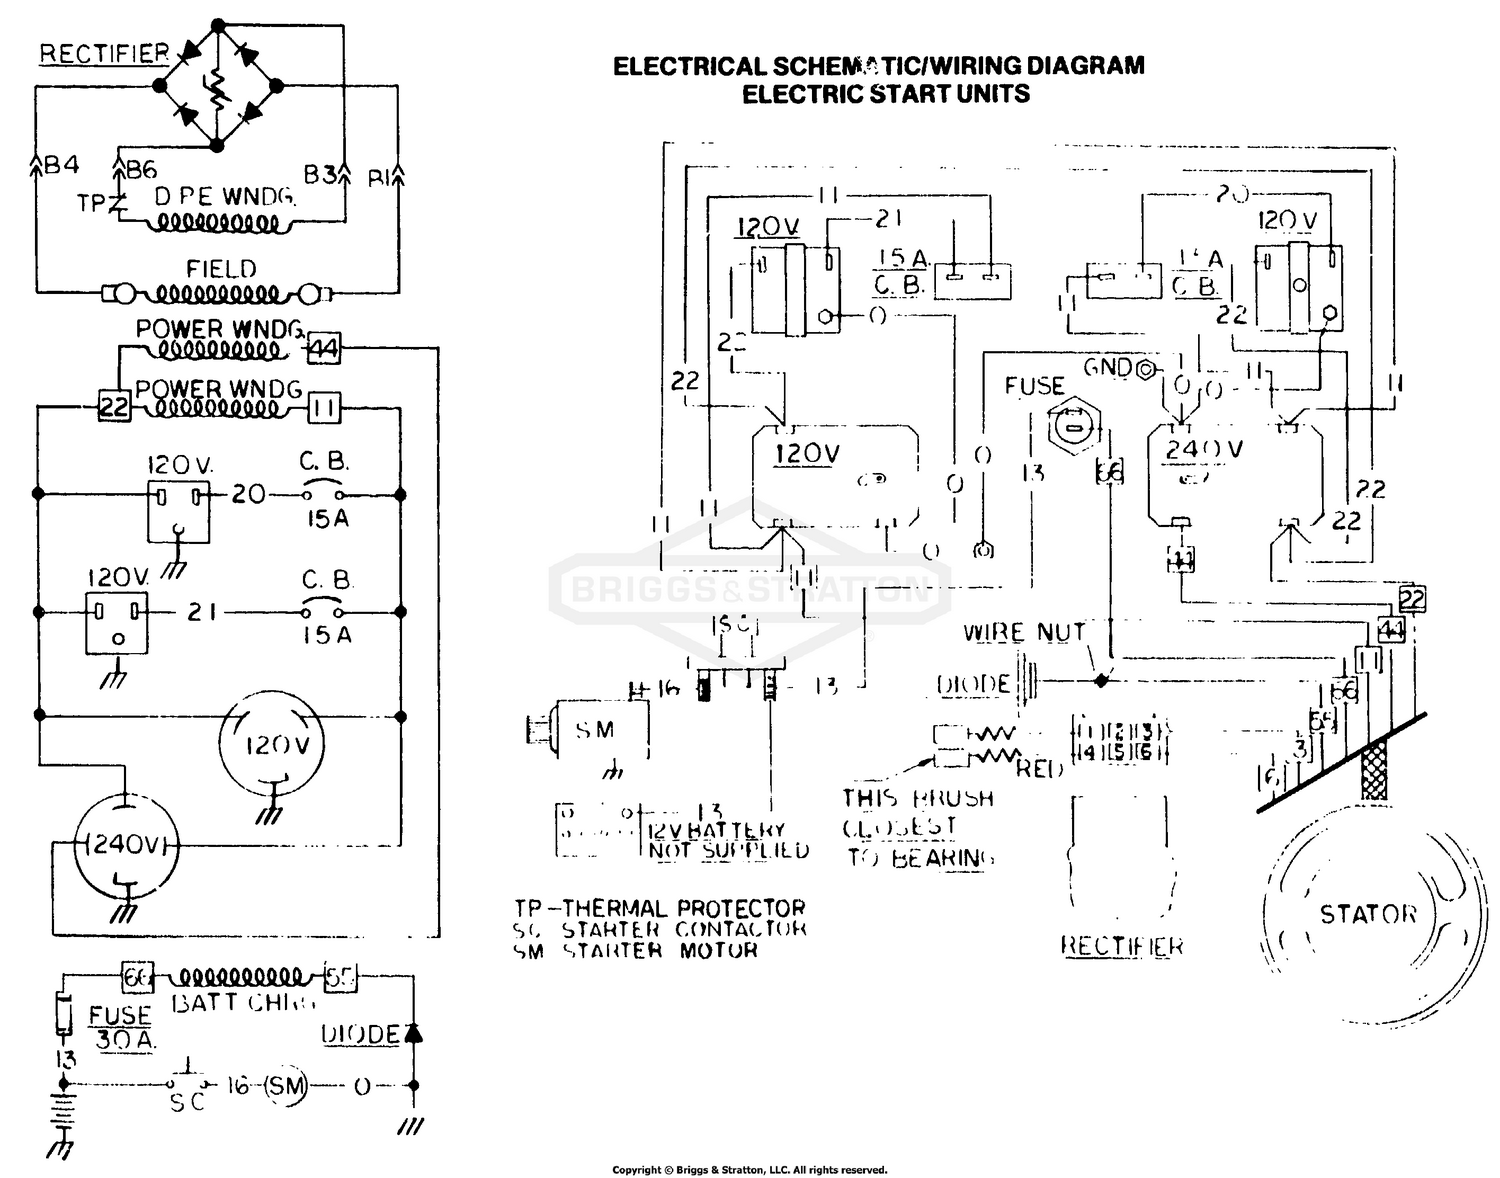 15a 125v Schematic Wiring Diagram | Wiring Liry Diagram Pv Wiring Bfl T on pv grounding diagram, pv panels diagram, pv diagram software, pv schematic diagram, pv equipment diagram, pv one line diagram, pv phase diagram,